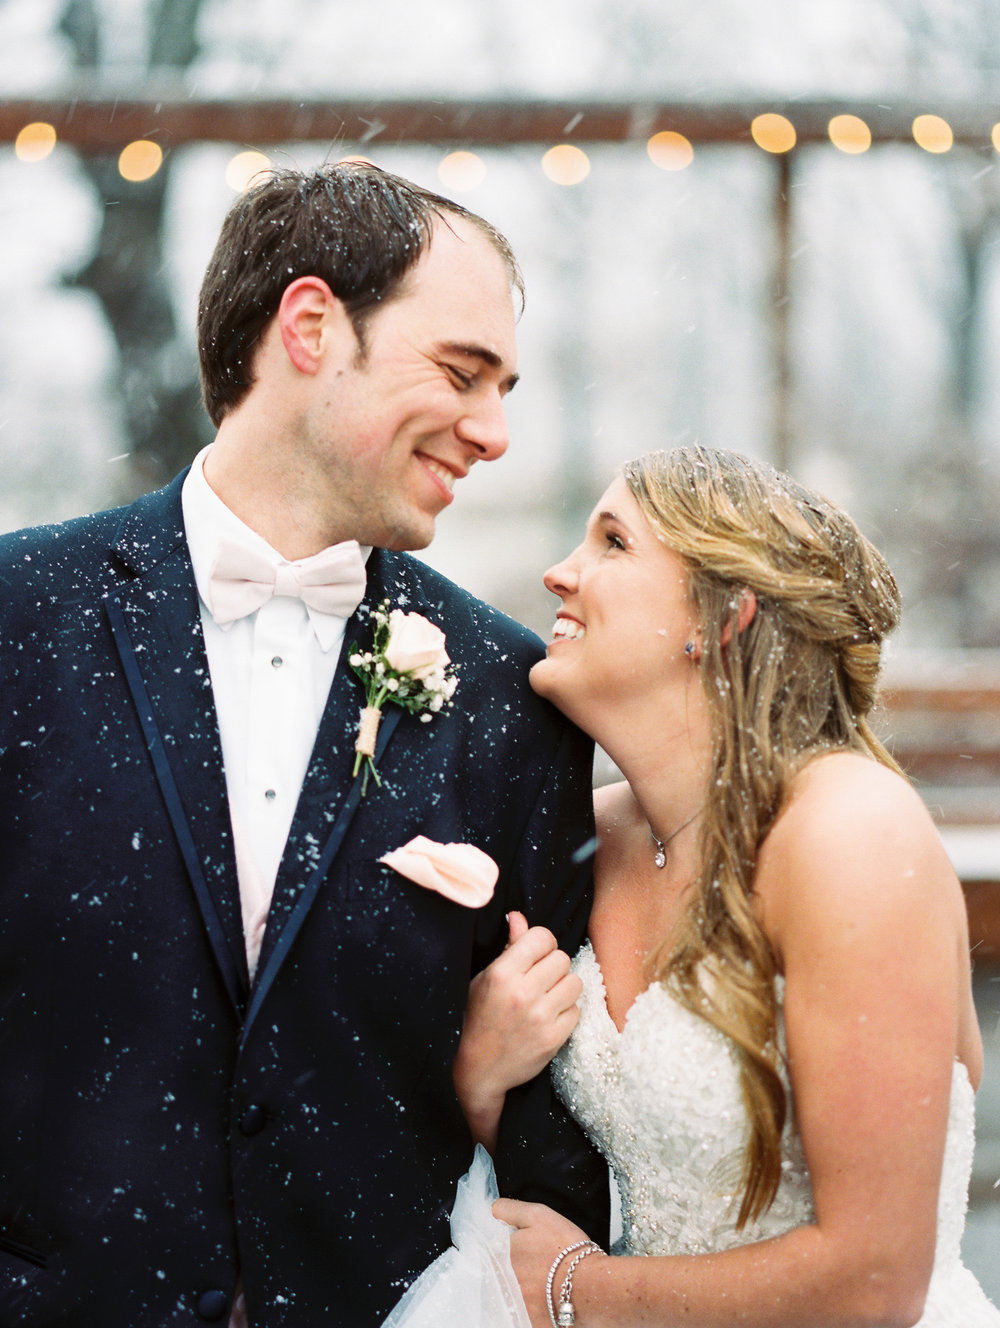 Grant & Ashley - The Sykes photographers are incredible! From the first time we communicated with them to the last pic they were always available to answer our questions and we very flexible. When the weather went from rainy to the perfect snow storm, they adjusted and captured the most perfect snowy, wedding moments. Both husband and wife being photographers gave us so many more beautiful pictures to pick from since they were both constantly snapping photos! They were always easy to communicate with and ready to adjust to any request we made. They put everyone at ease and always had smiles on their faces. If you are looking for the perfect photographers, look no further! We highly recommend Simply Sykes Photography!